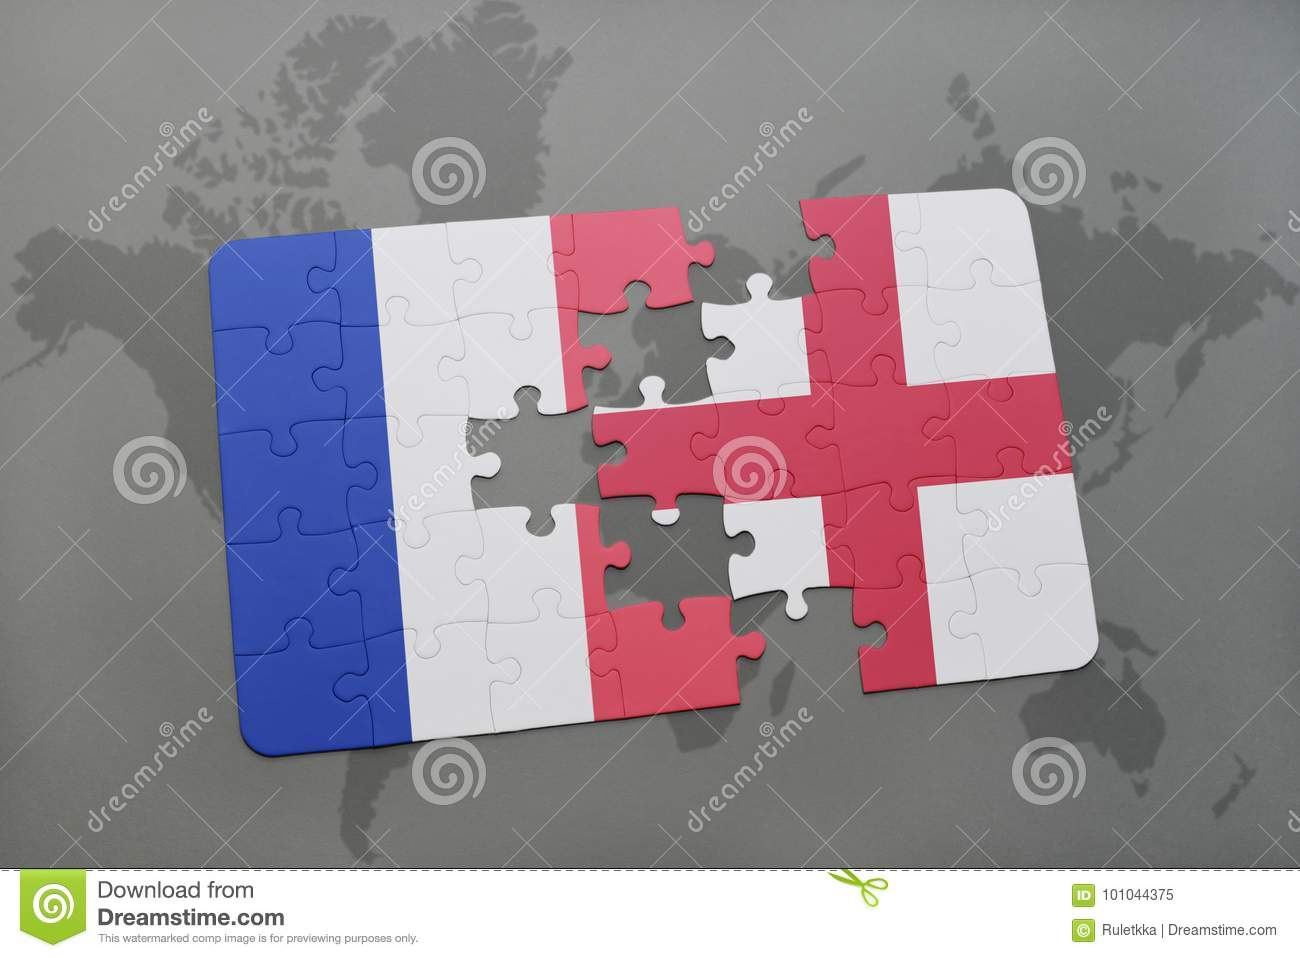 World Map Of France And England.Puzzle With The National Flag Of France And England On A